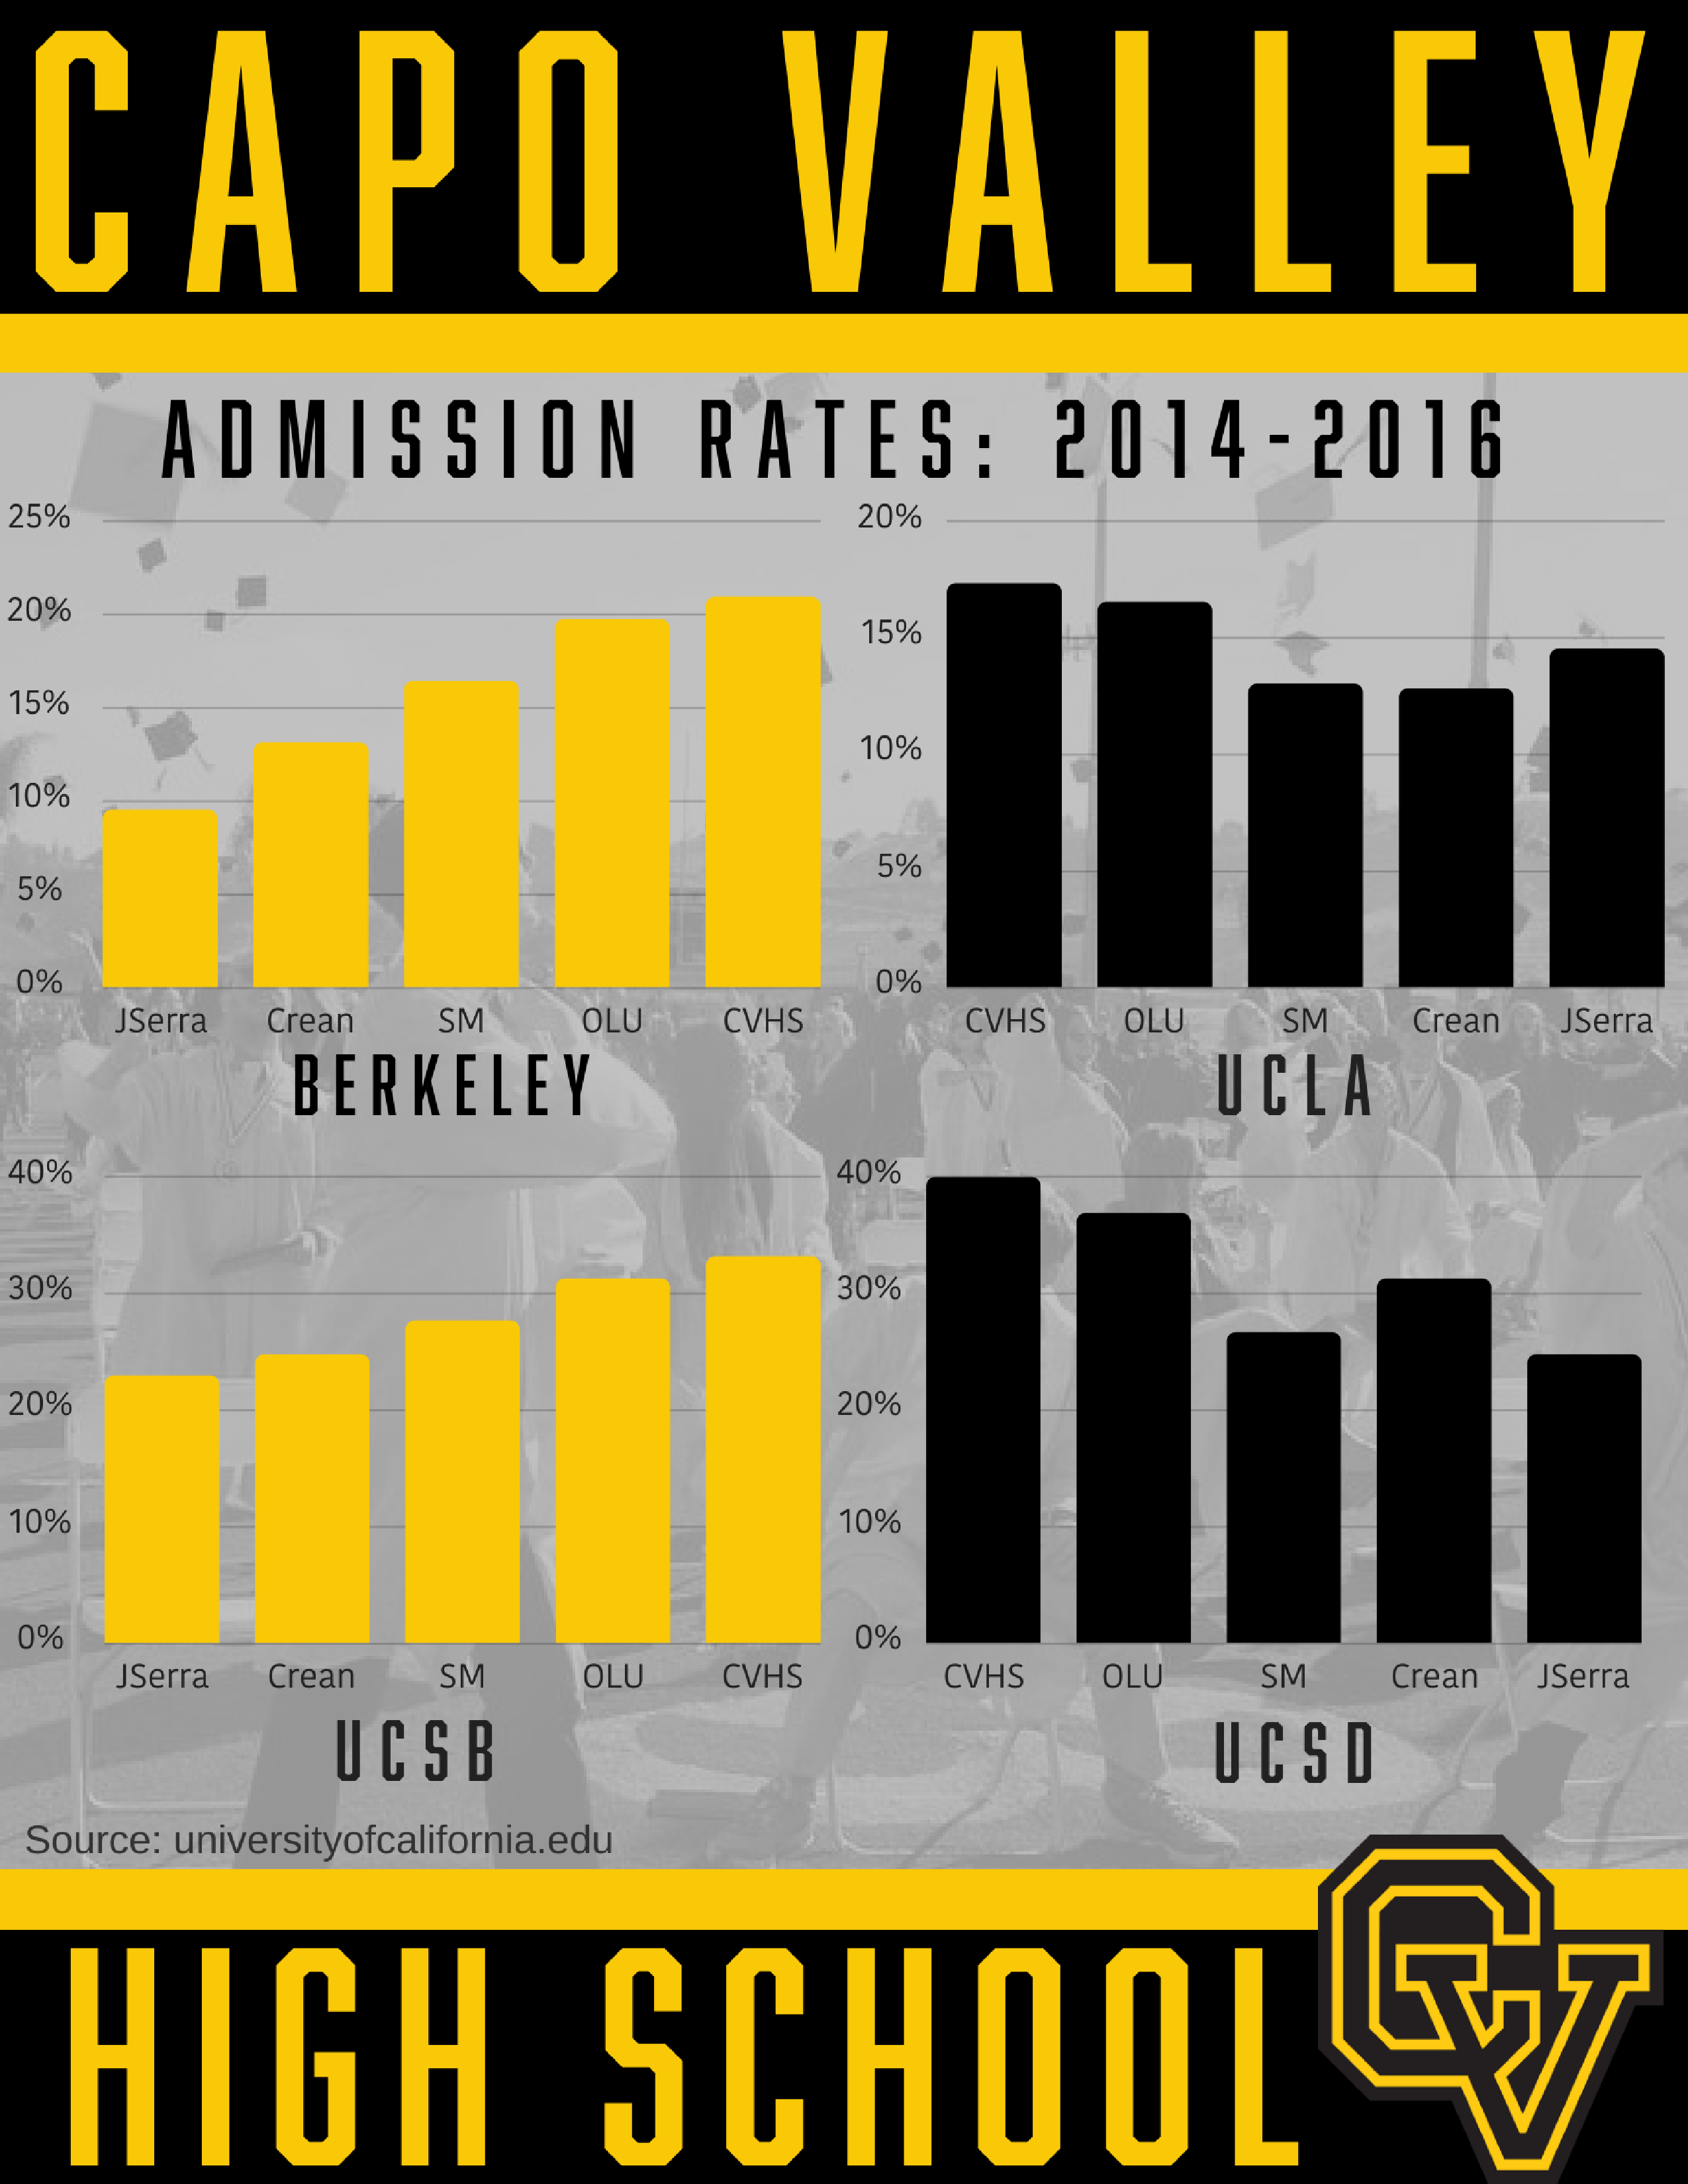 Check out our college entrance rates and compare them to  Santa Margarita,  JSERRA, Mater Dei, Orange Lutheran, OLU, Crean Lutheran. Why pay more for less,  Capistrano Valley High School offers innovative and rigorous academic programs  that prepare students to be college and career ready.